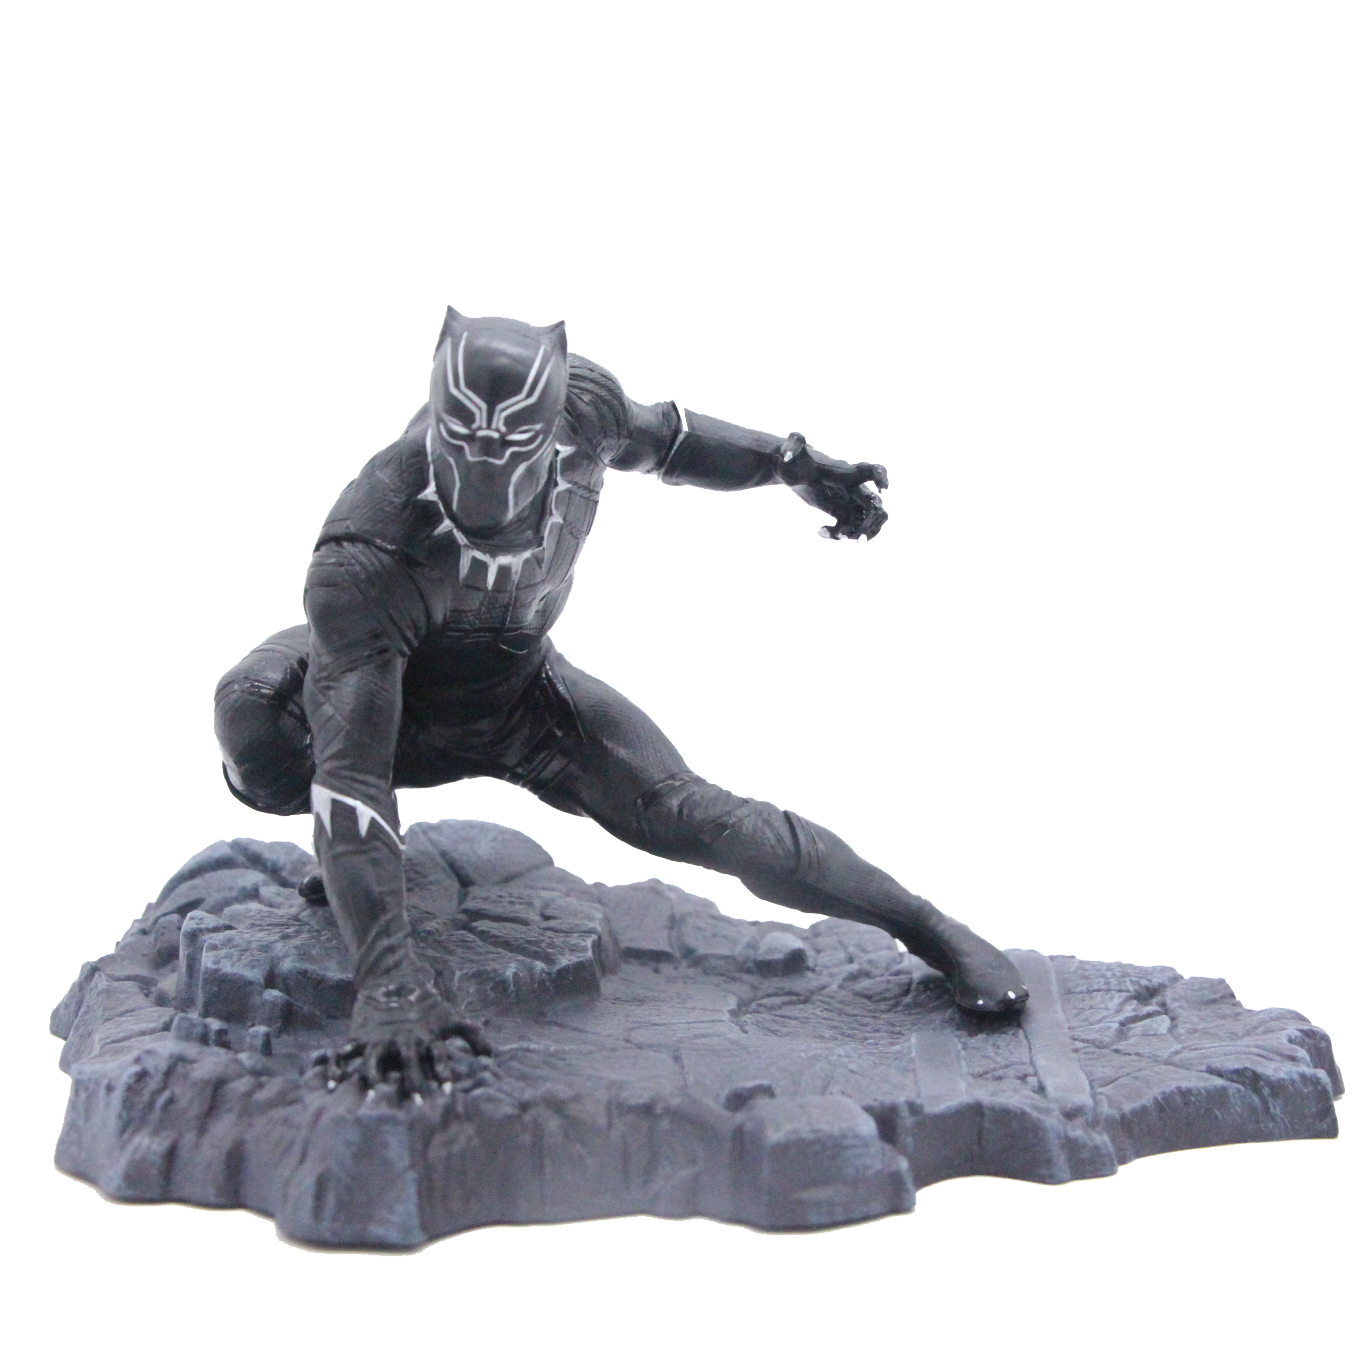 marvel-font-b-avengers-b-font-infinity-war-black-panther-super-hero-action-figure-model-toy-14-20cm